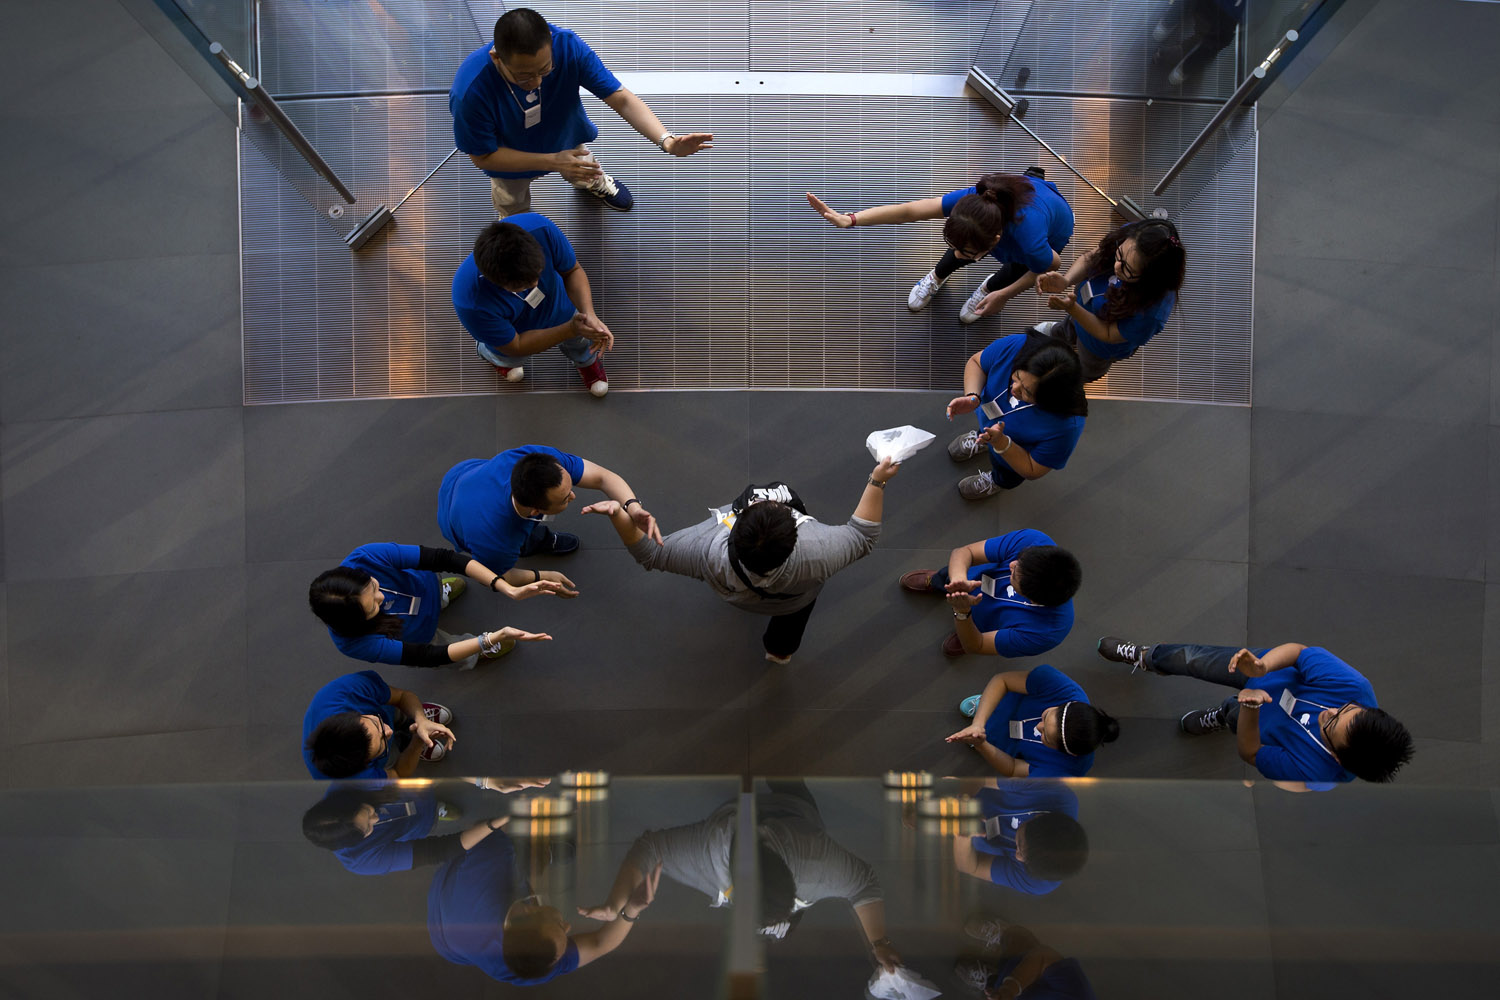 Sept. 20, 2013. Chinese employees cheer a customer after he bought new iPhone at an Apple store in Wangfujing shopping district in Beijing.